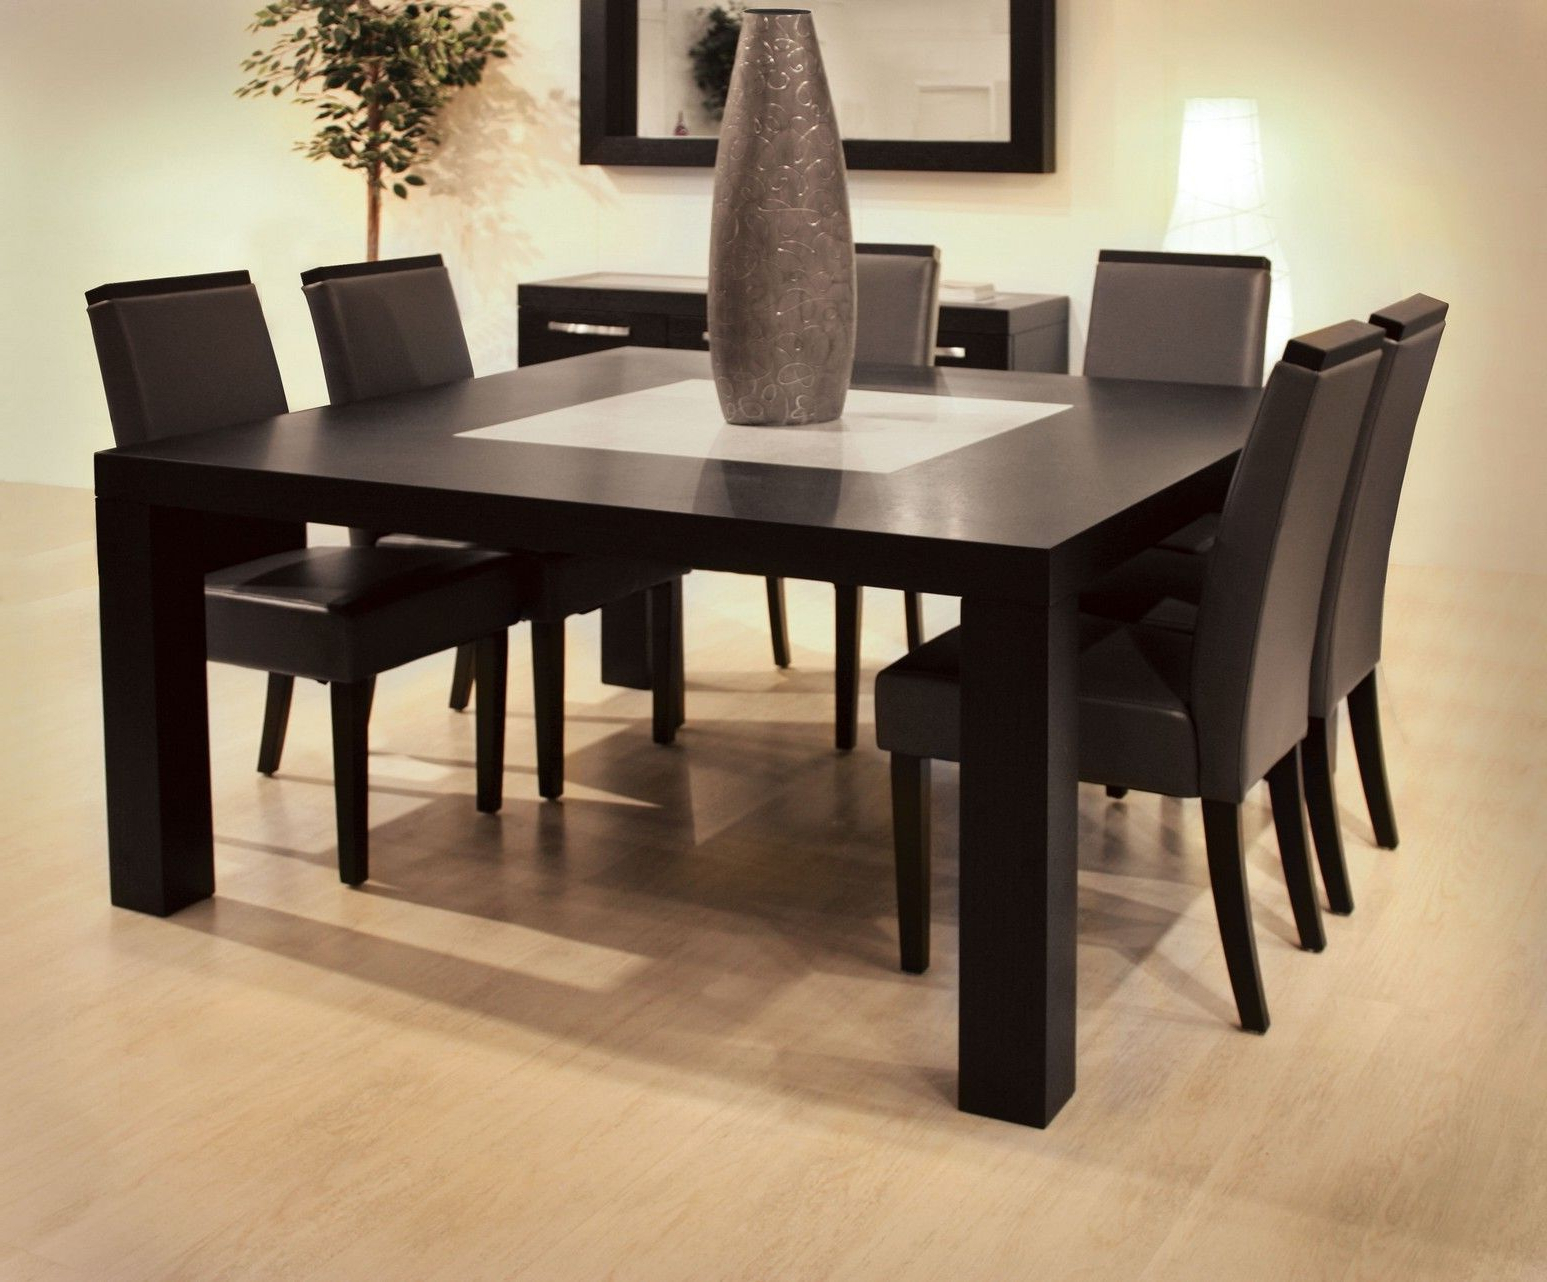 Dining Table Sets Wood Modern | Dining Room | Pinterest | Dining With Regard To Parsons Grey Solid Surface Top & Brass Base 48x16 Console Tables (View 19 of 19)